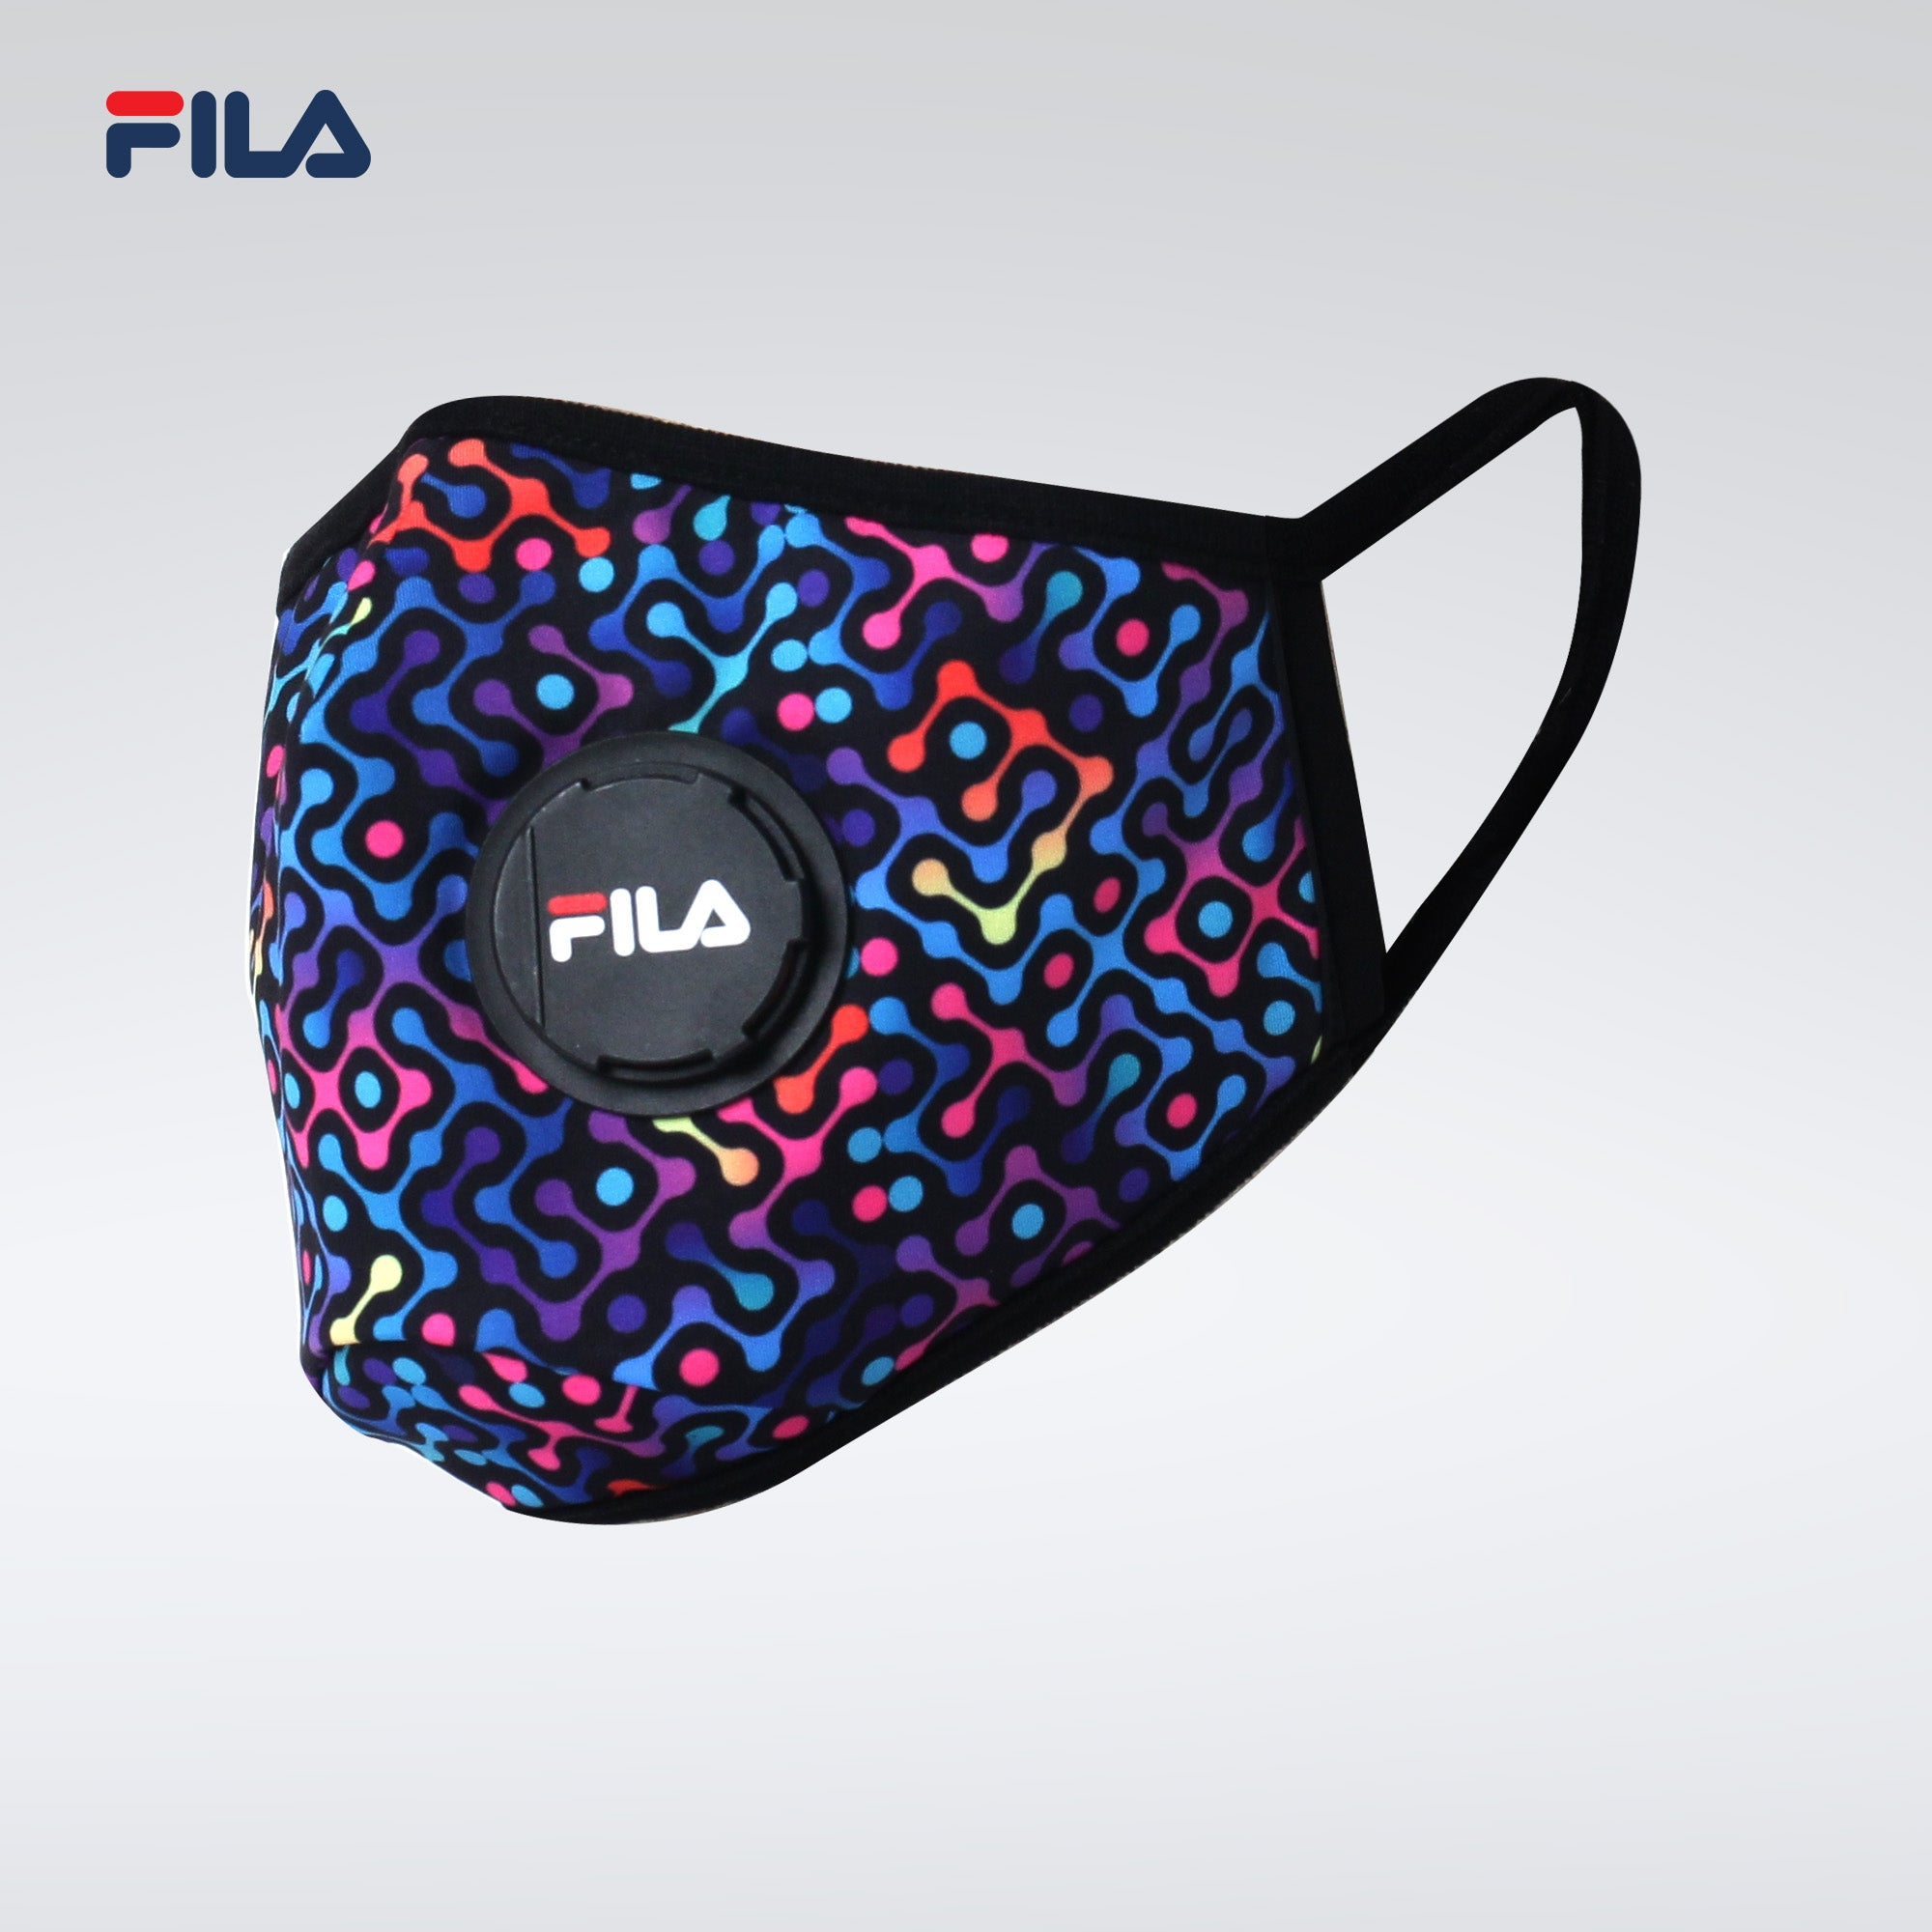 Fila Fashionable/3D with breather valve Face Mask - Multi-color (Free Size)